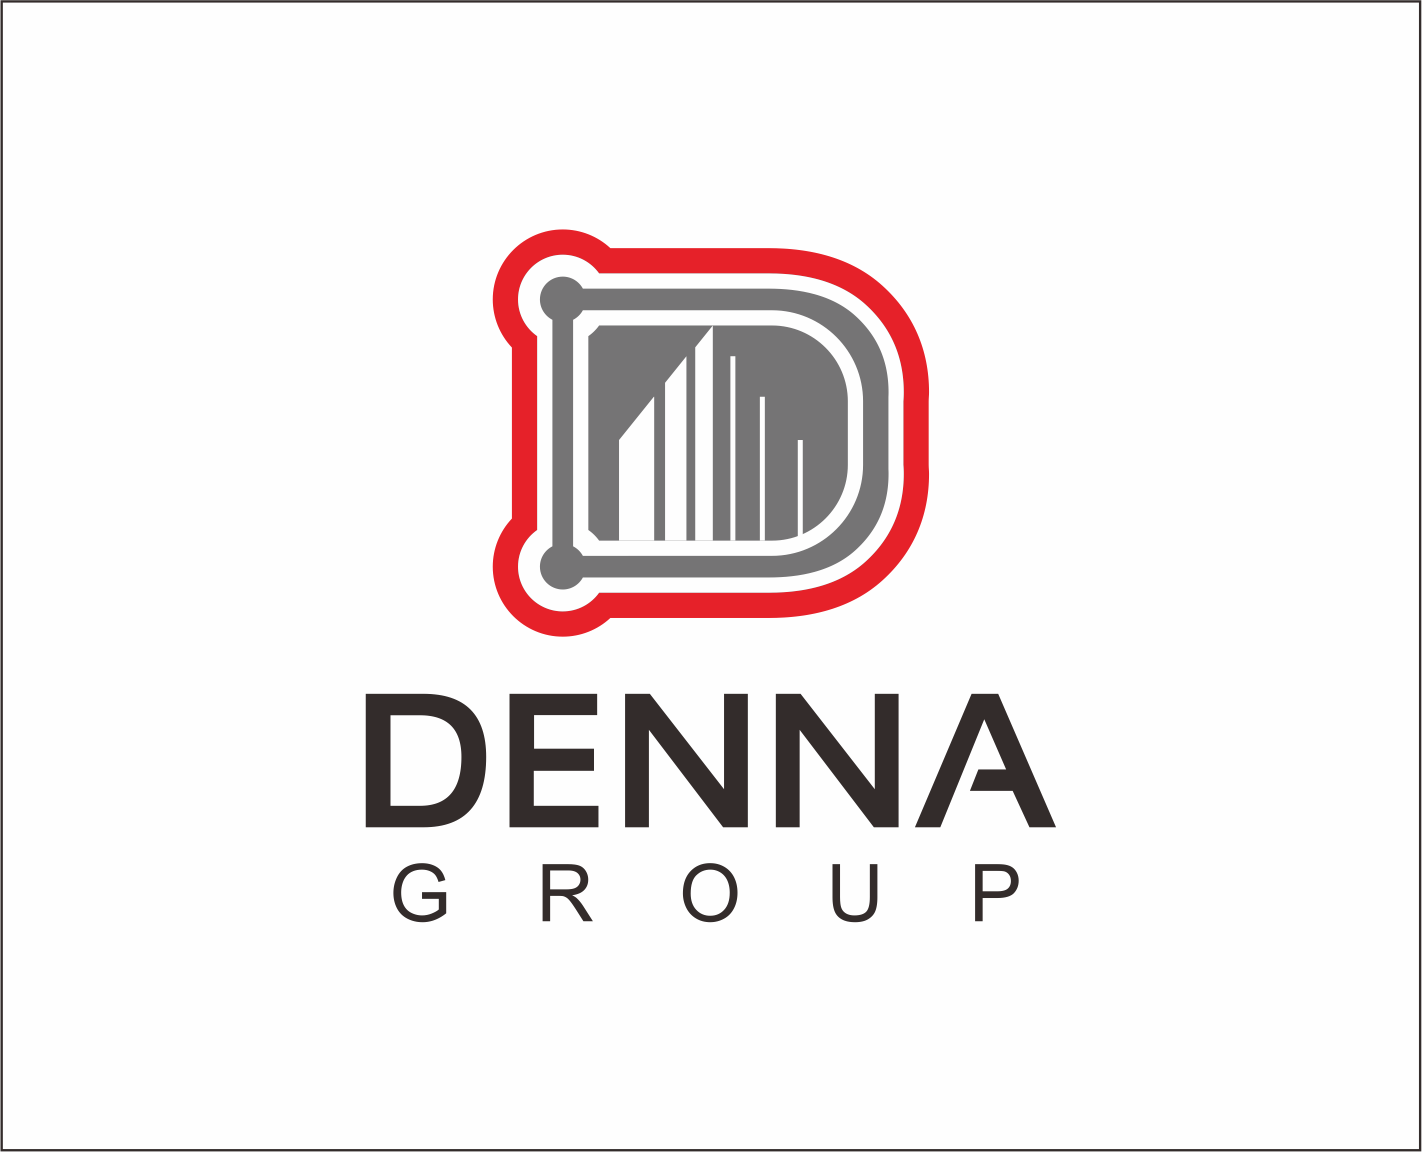 Logo Design by Armada Jamaluddin - Entry No. 50 in the Logo Design Contest Denna Group Logo Design.